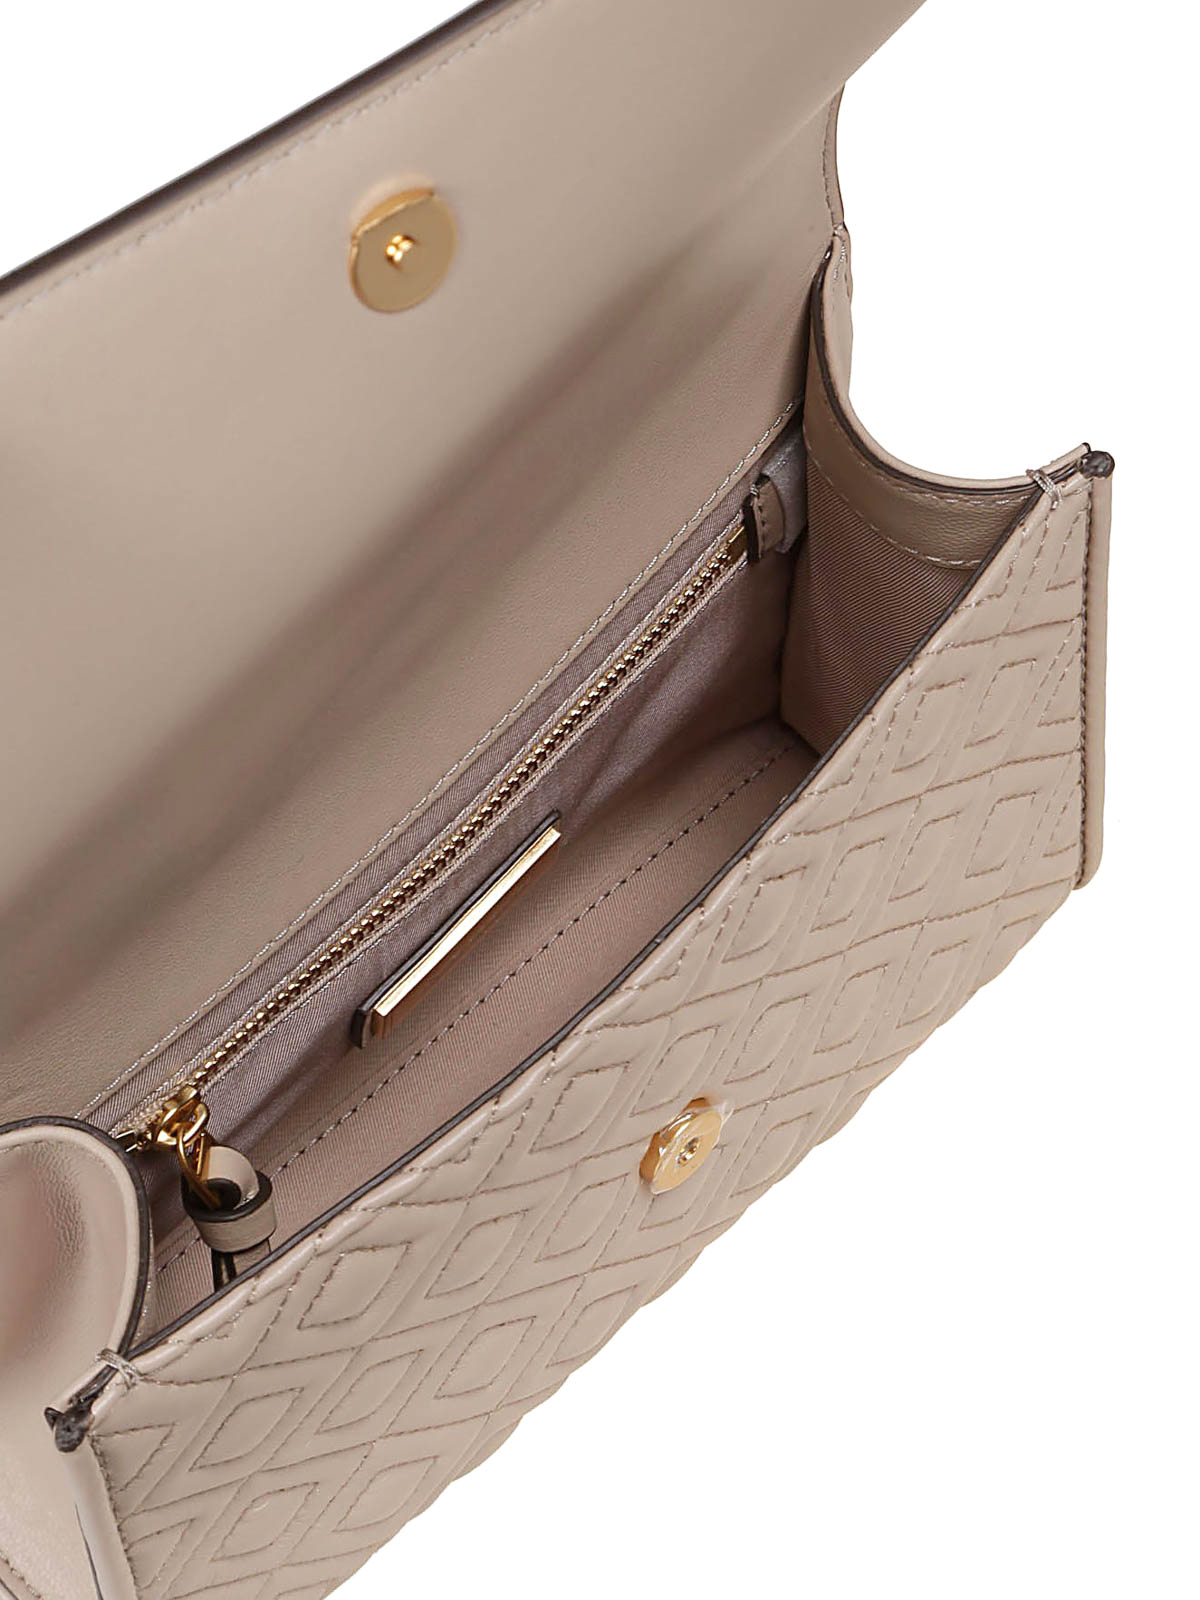 Tory Burch - Borsa Fleming piccola in pelle - borse a tracolla ... 4d5cd21bd2d